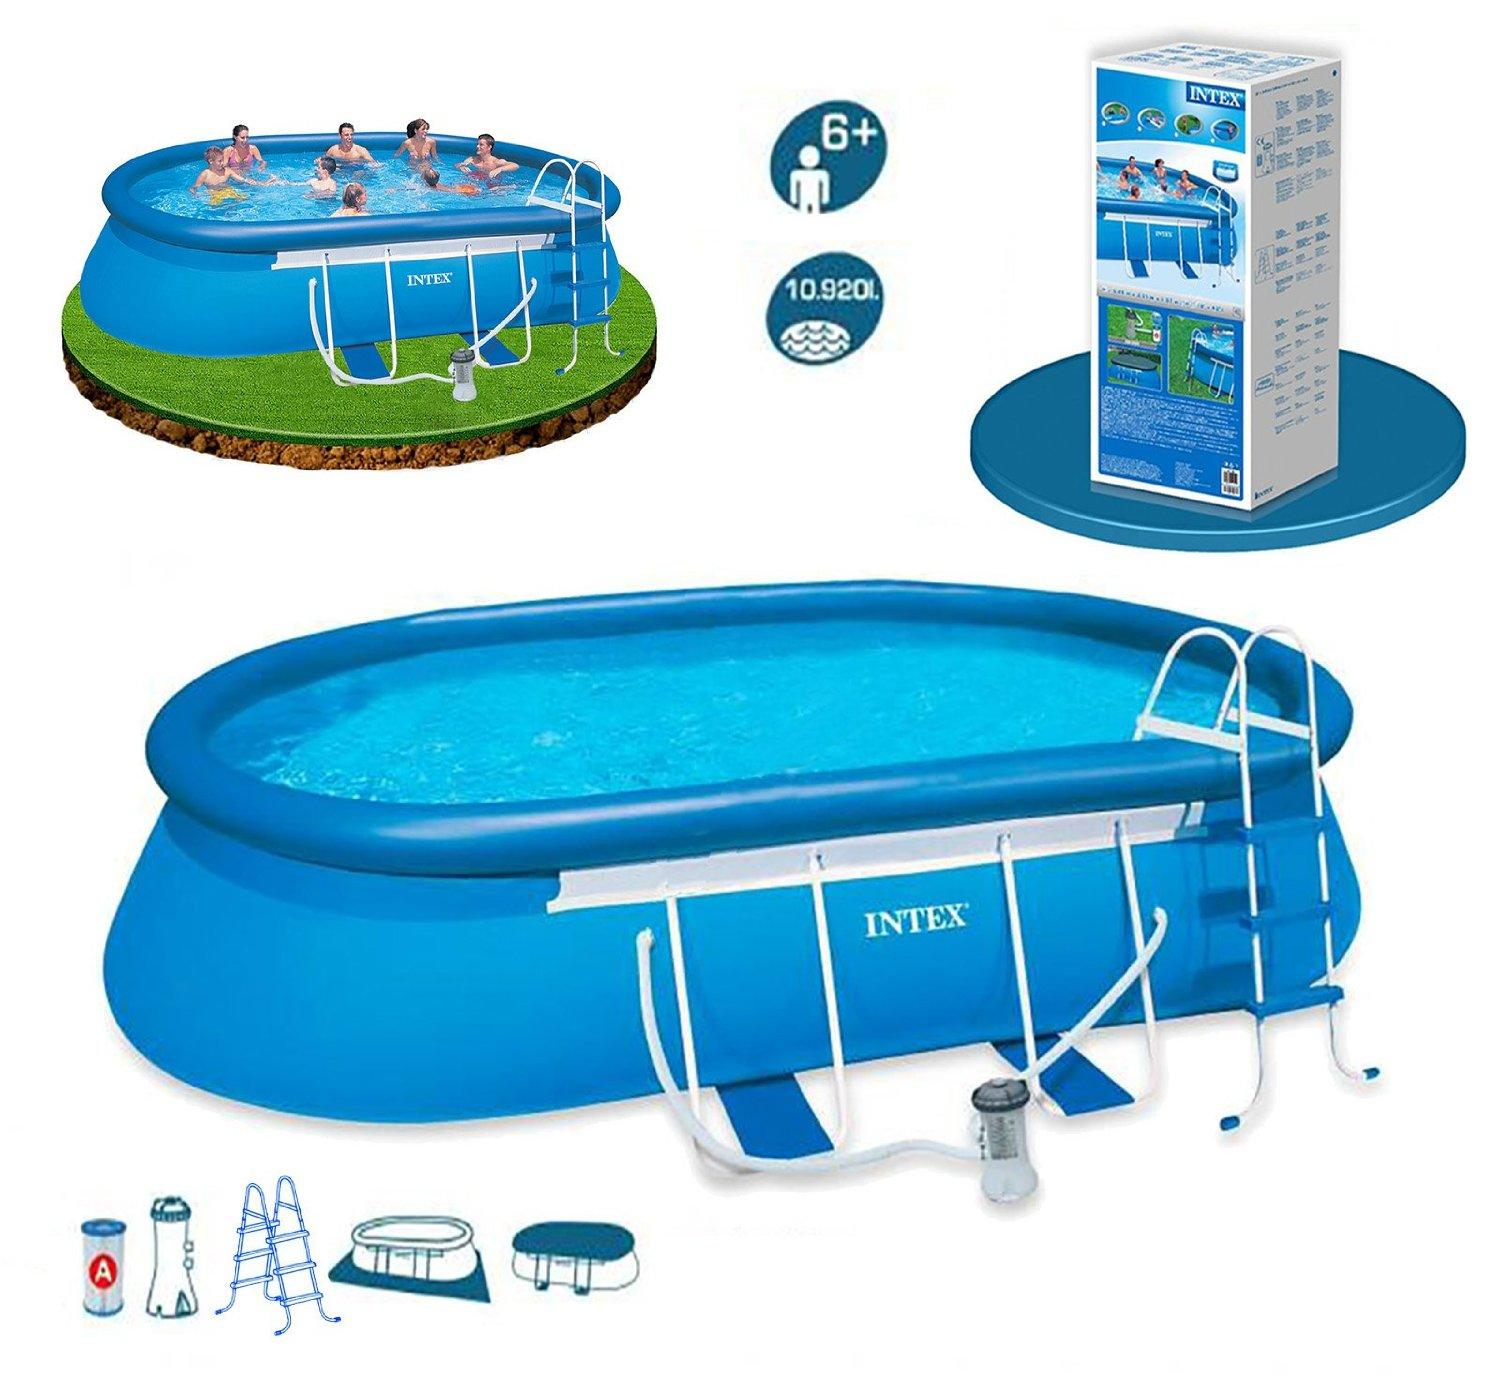 Piscina ovale autoportante intex 54432 cm 549x305x107 con for Piscine portante